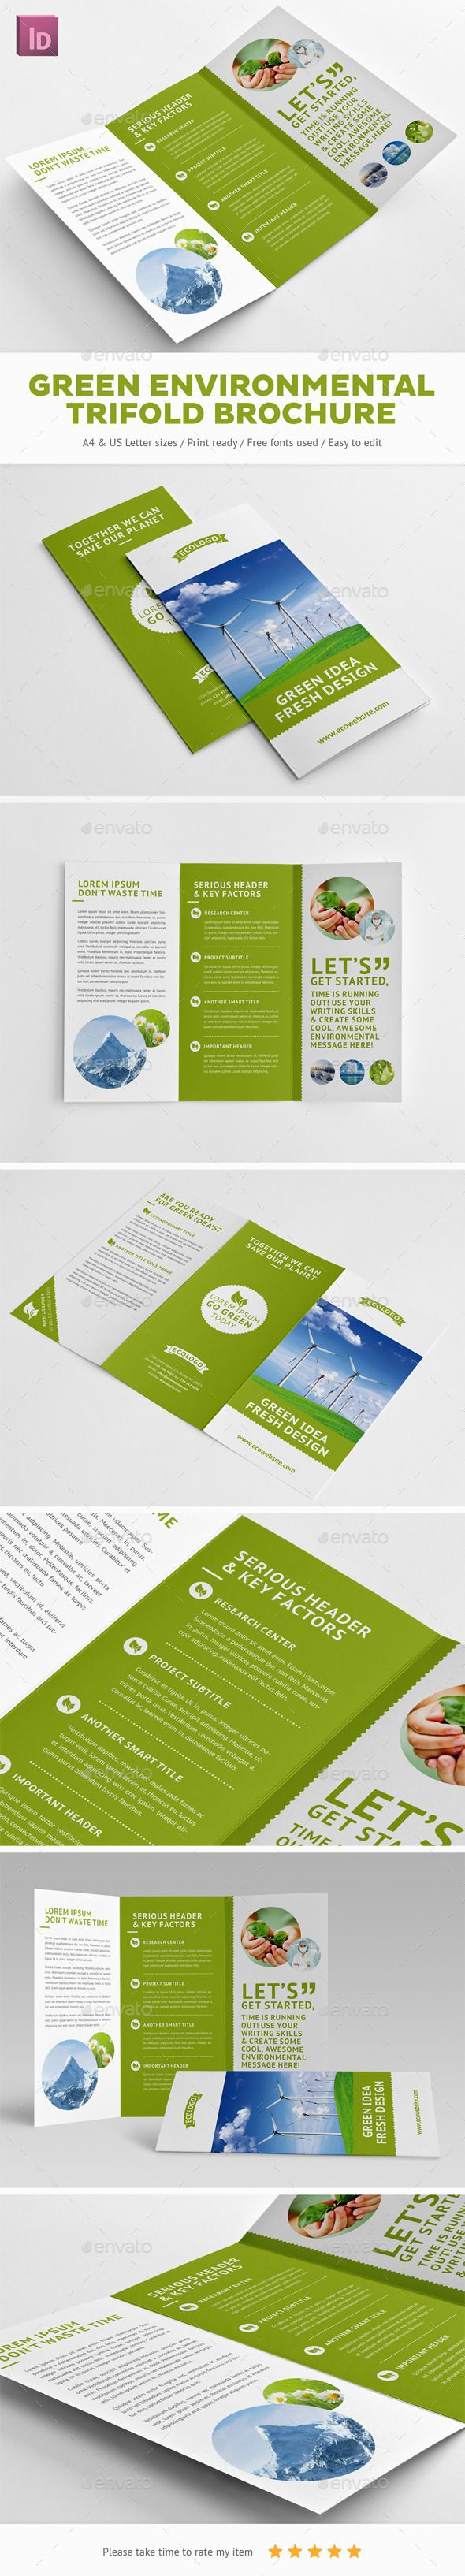 Green Environmental Trifold Brochure  Print Templates Brochures